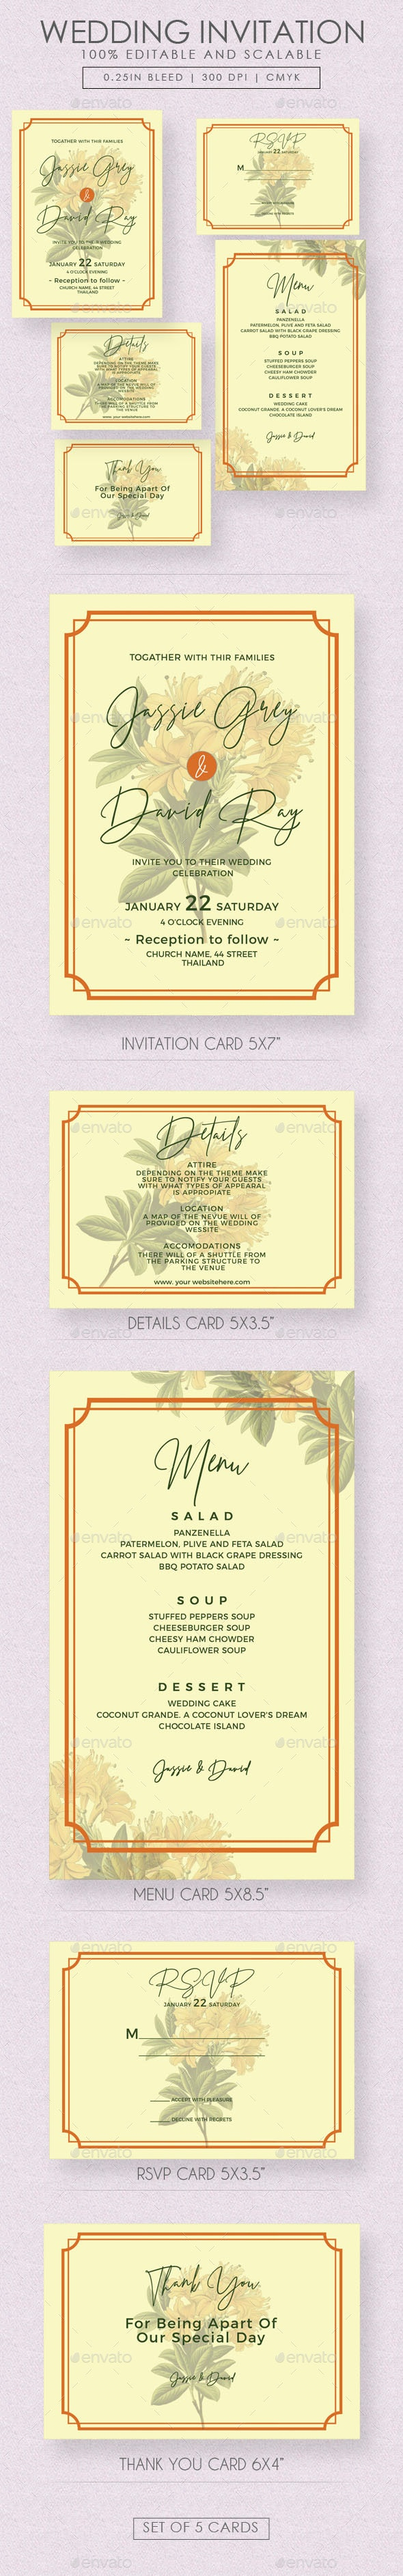 Flourish Wedding Invitation Suite - Weddings Cards & Invites